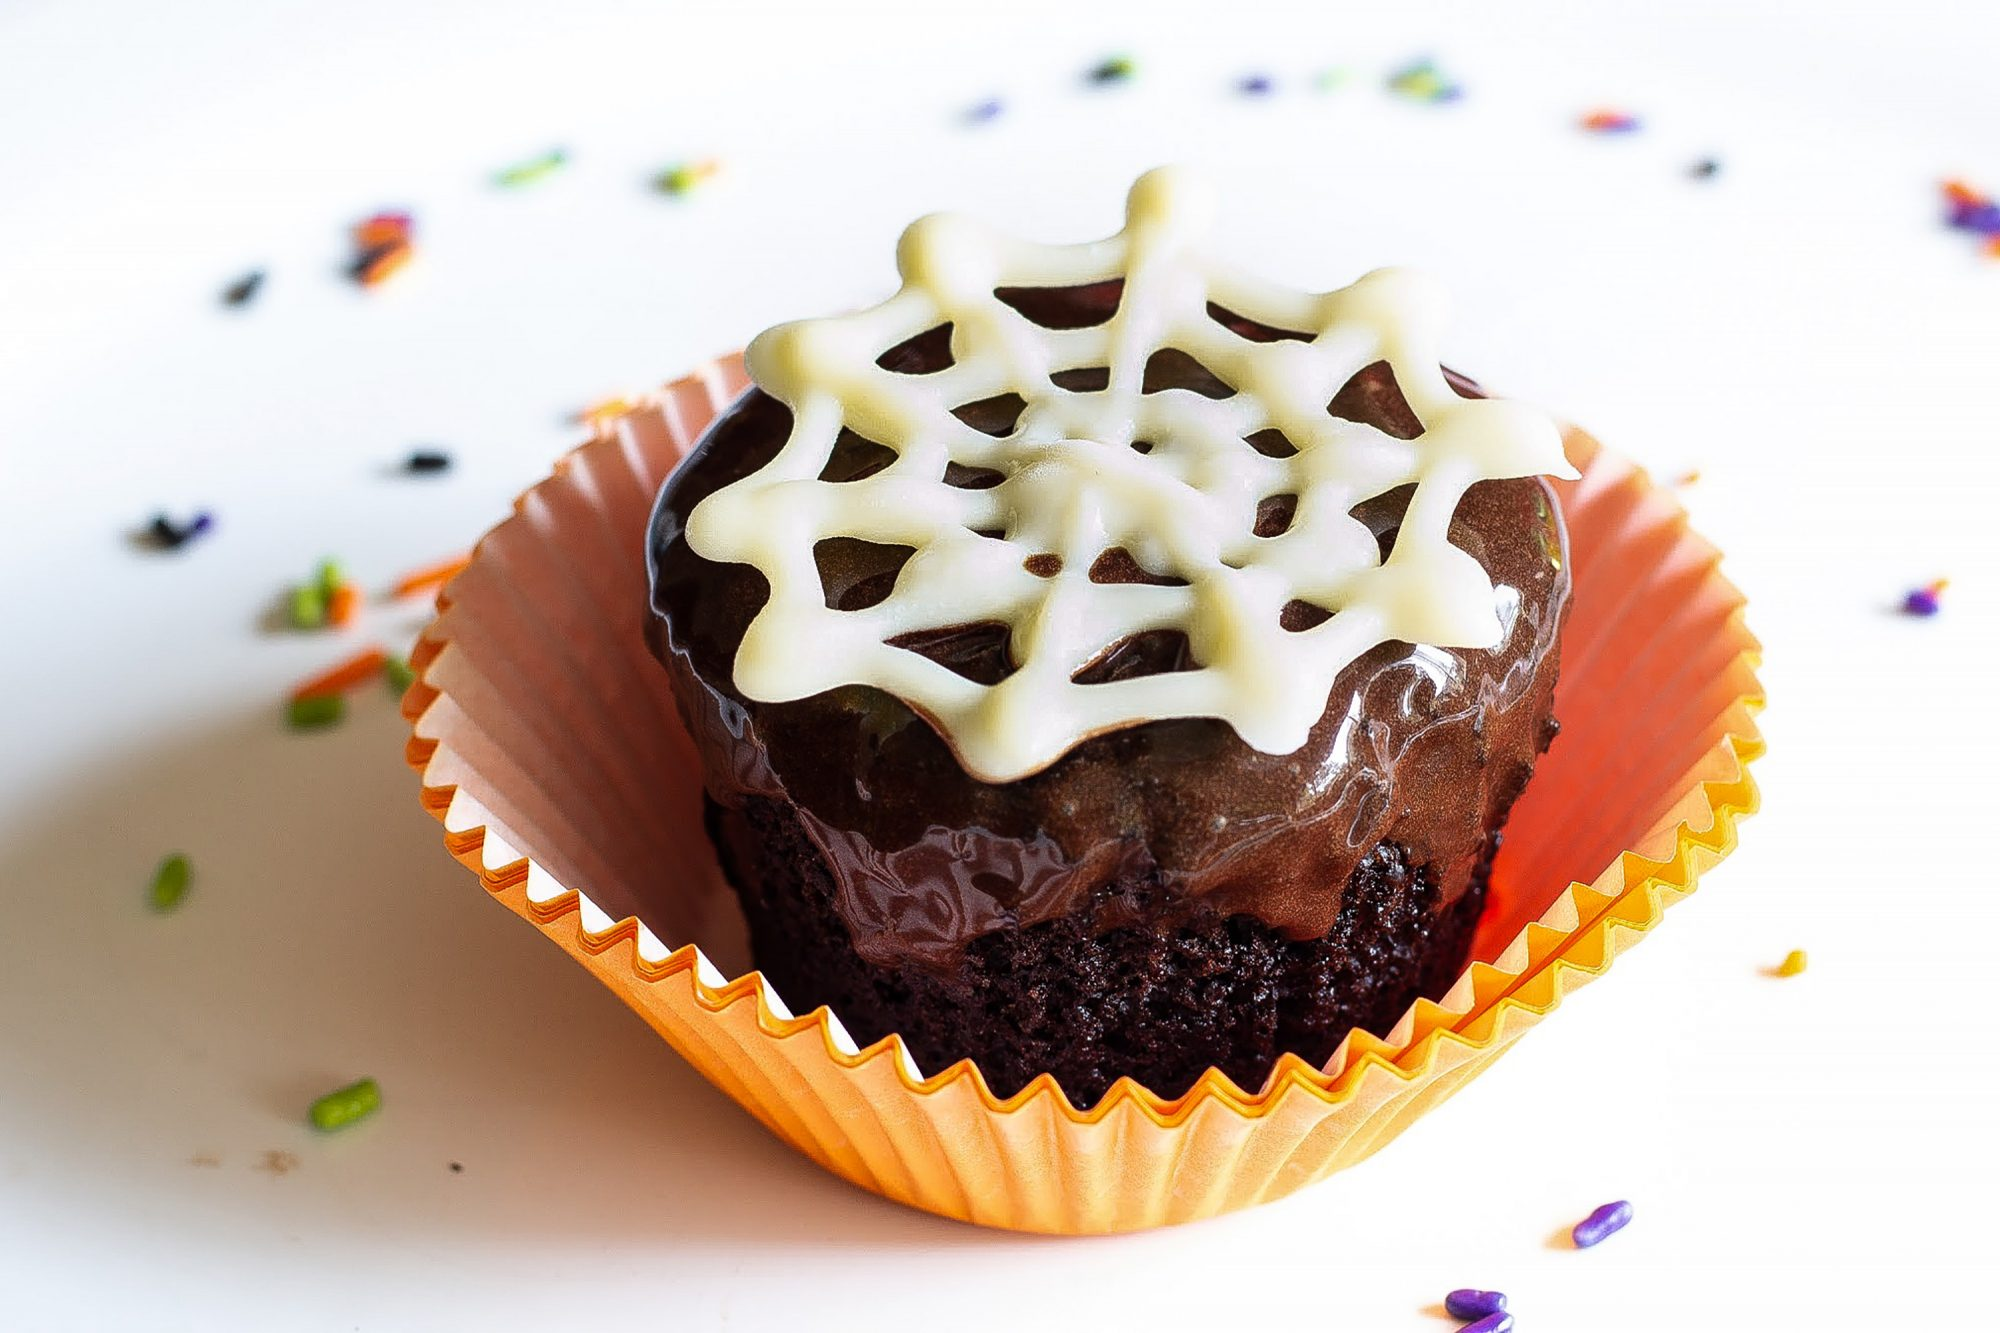 Chocolate Cupcake with Chocolate Frosting, Orange Wrapper and White Chocolate Spider Web